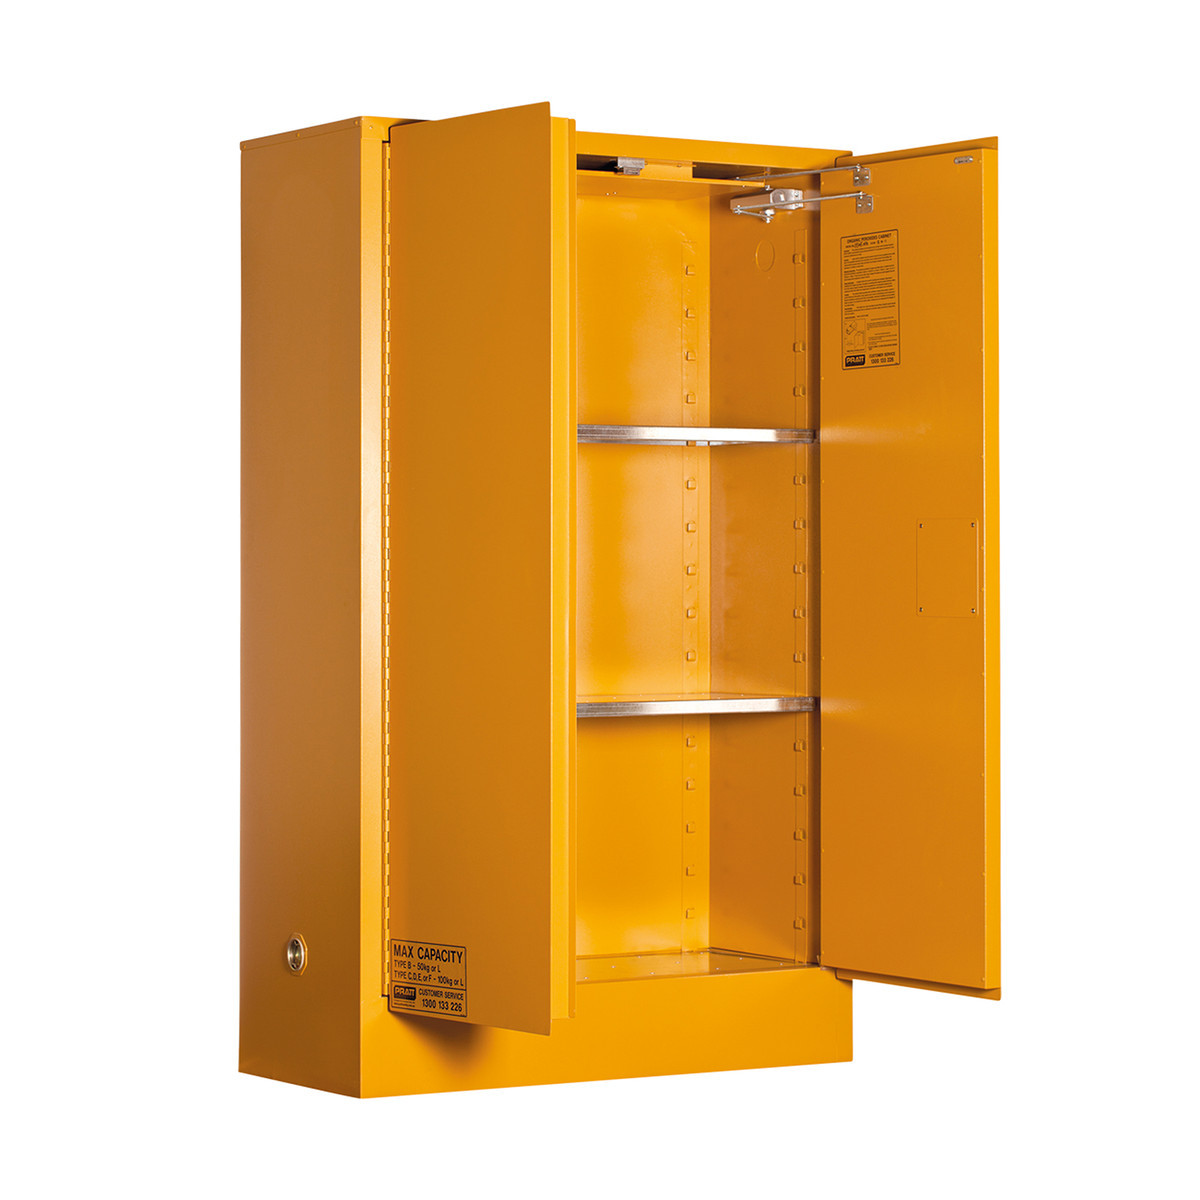 Organic Peroxide Storage Cabinet 100 Liters - 2 Door, 3 Shelf